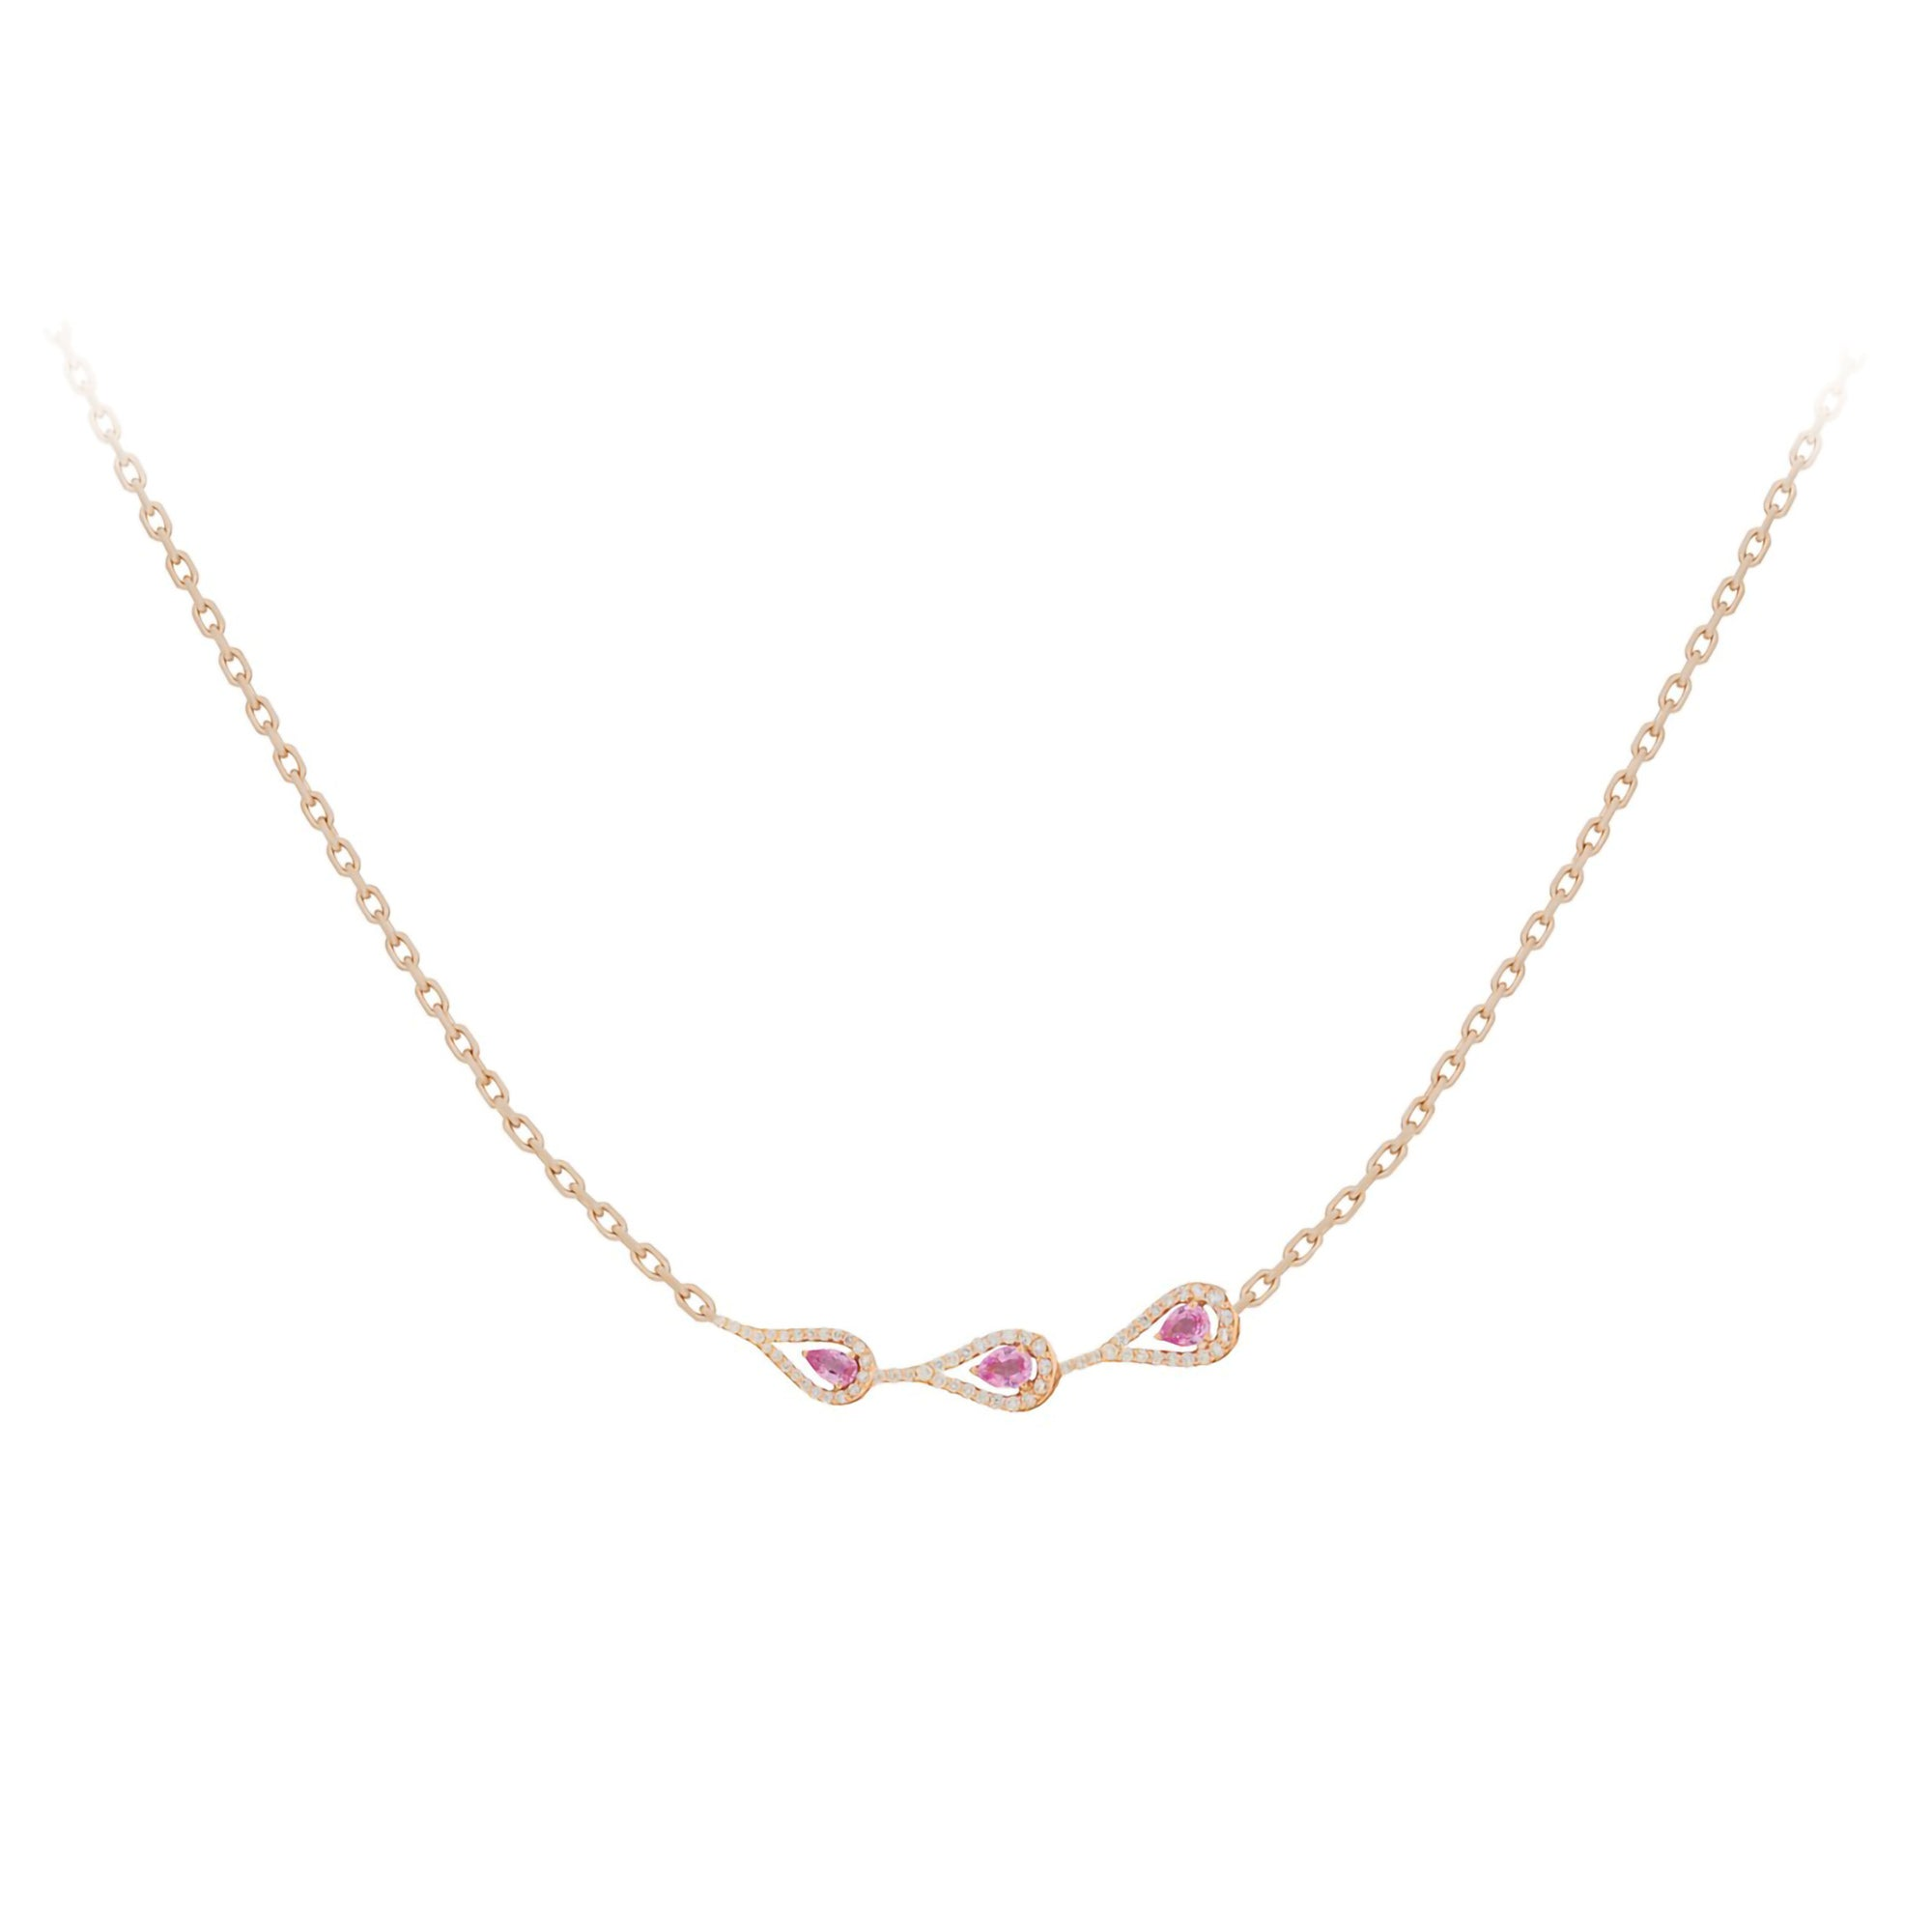 Era Rose Gold Necklace With Pink Sapphires Diamonds